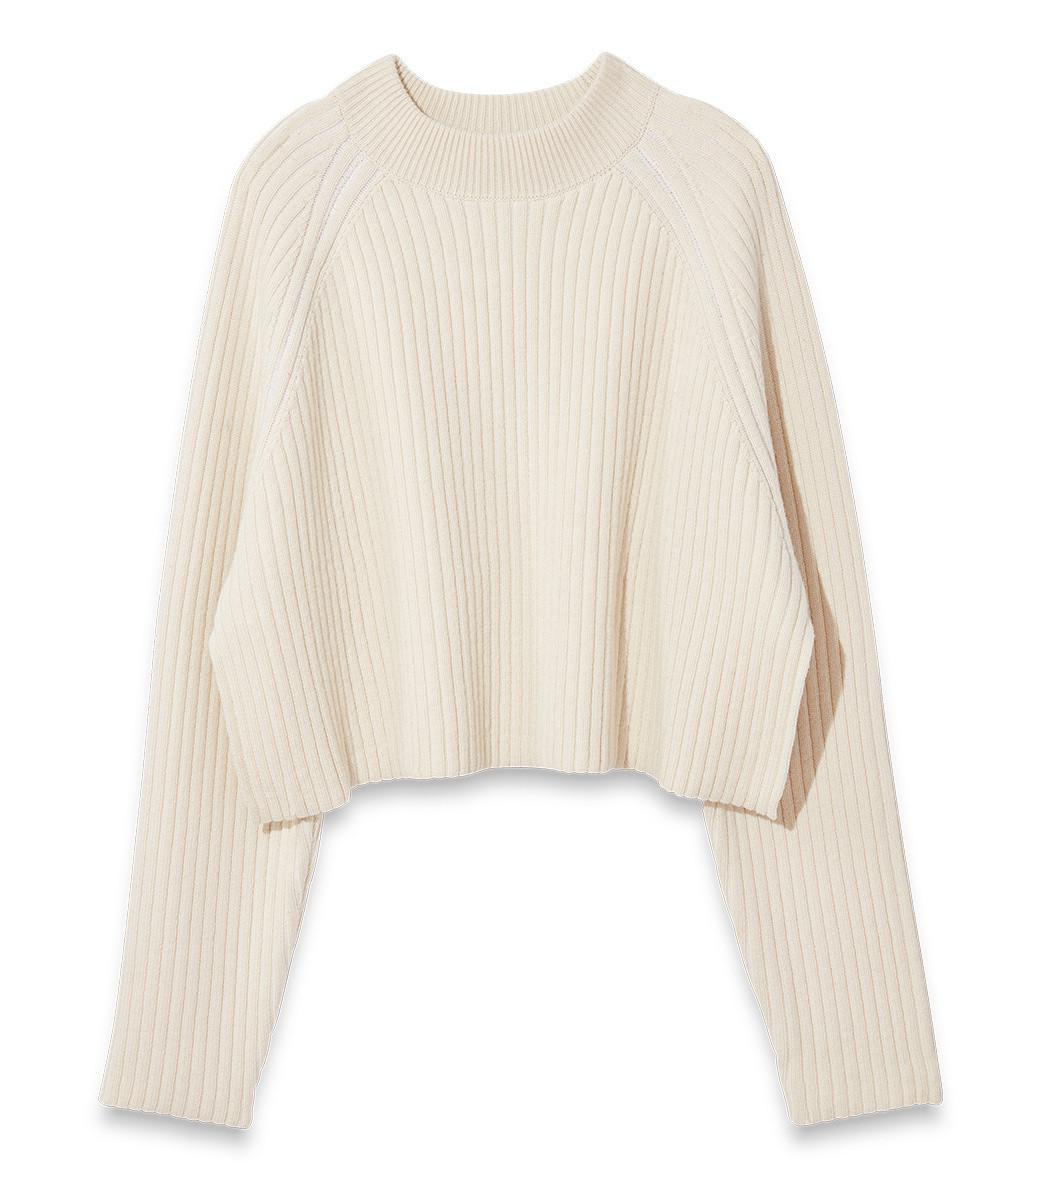 55956eed51ece Lyst - Proenza Schouler Cropped Crewneck Sweater in White